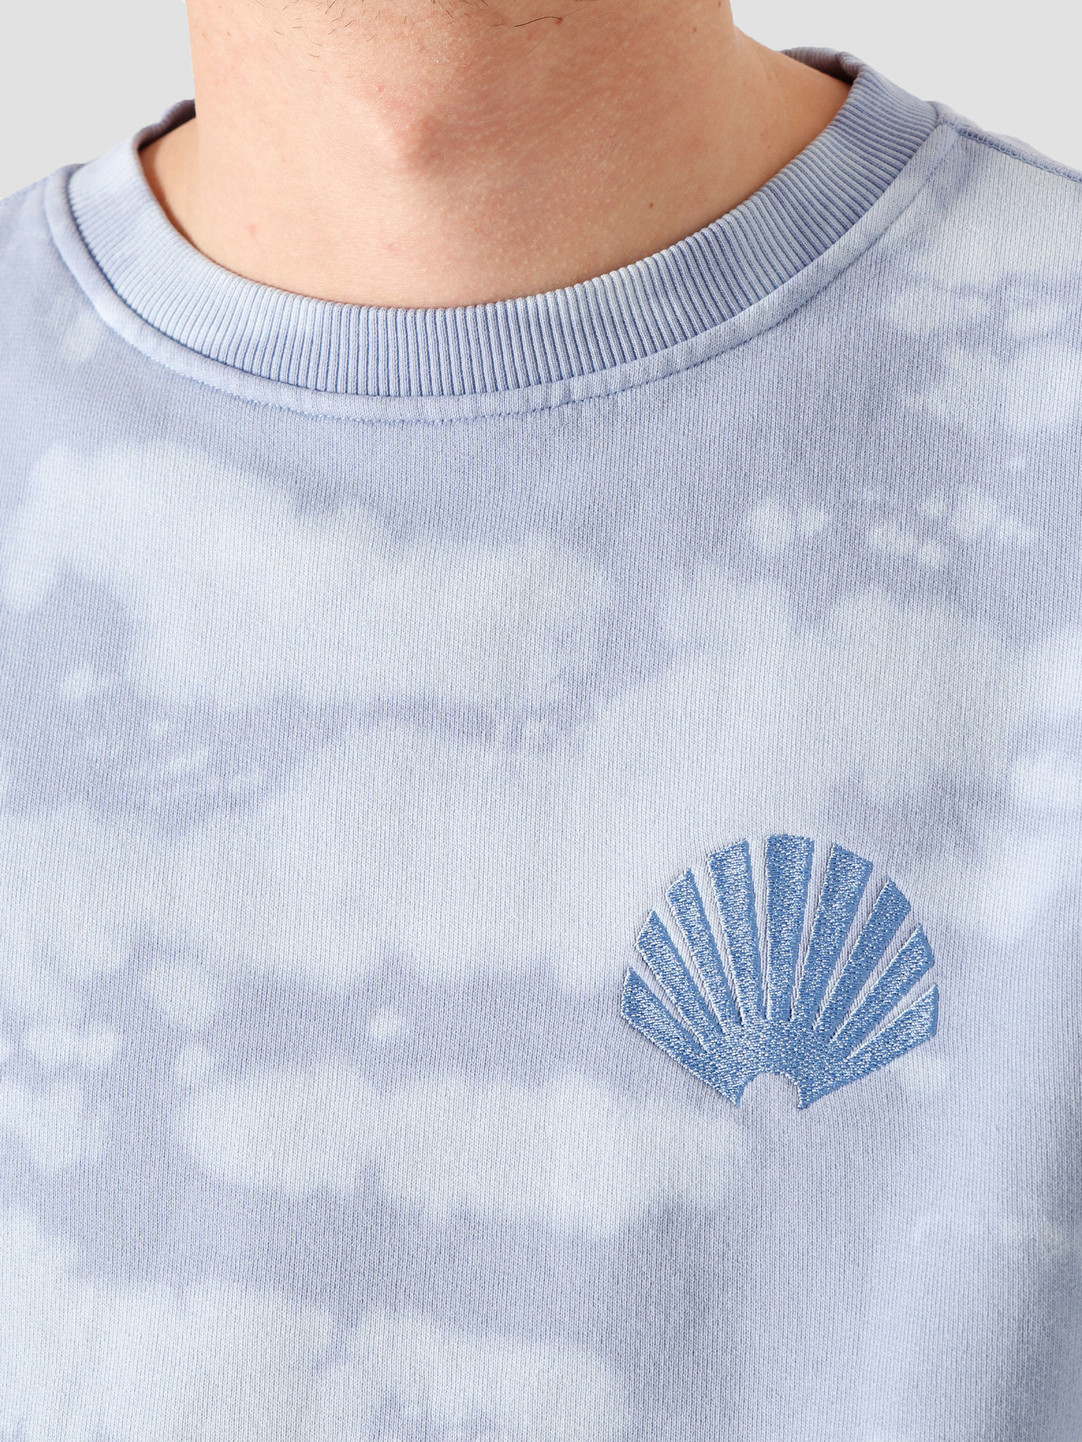 New Amsterdam Surf Association New Amsterdam Surf association Logo Sweat Sky 2021046